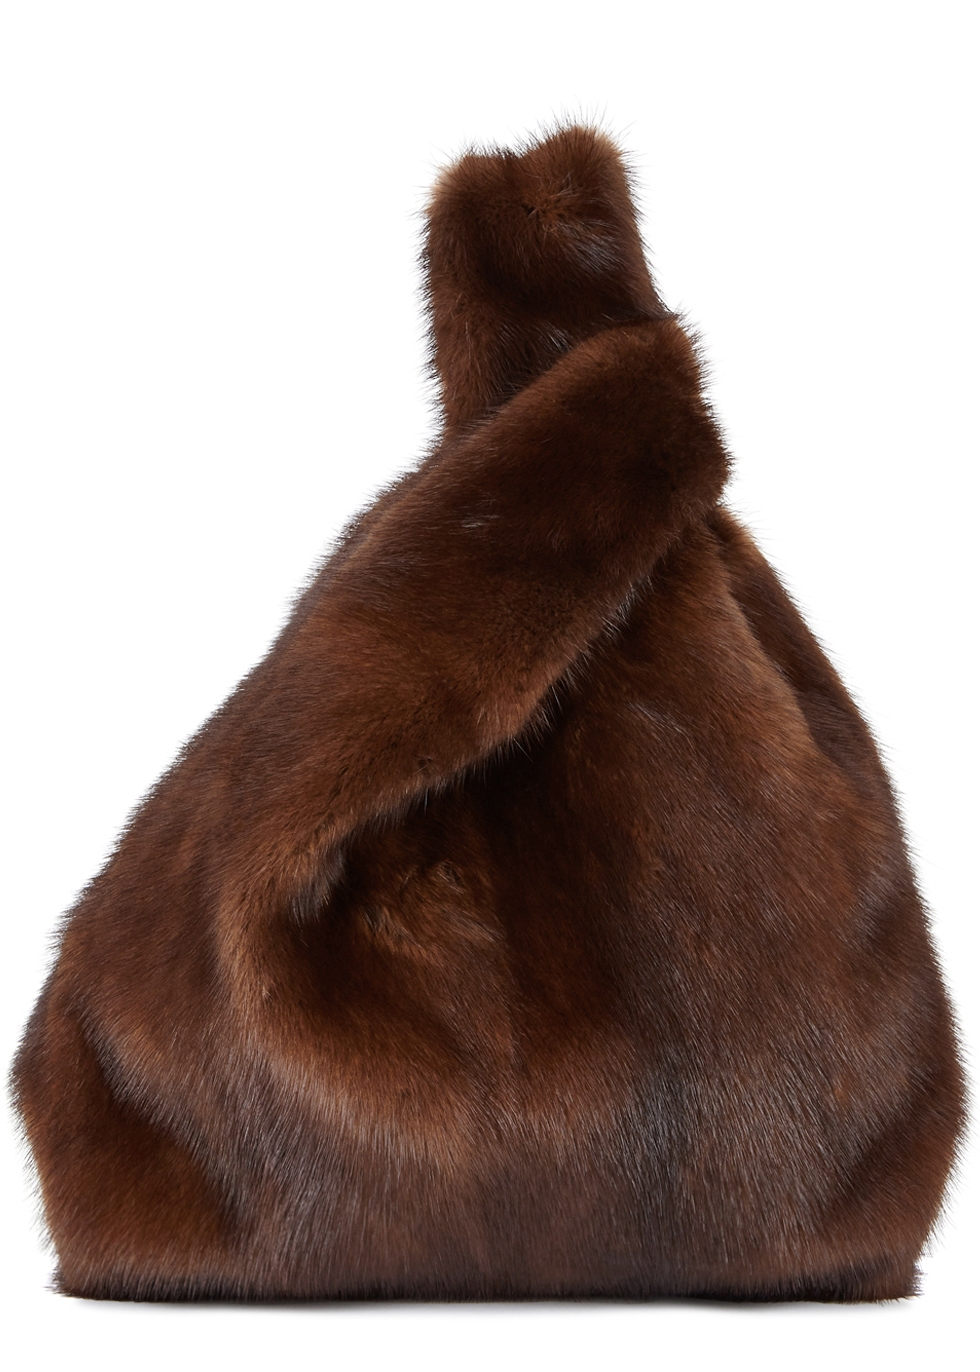 Furrissima brown mink fur tote ...